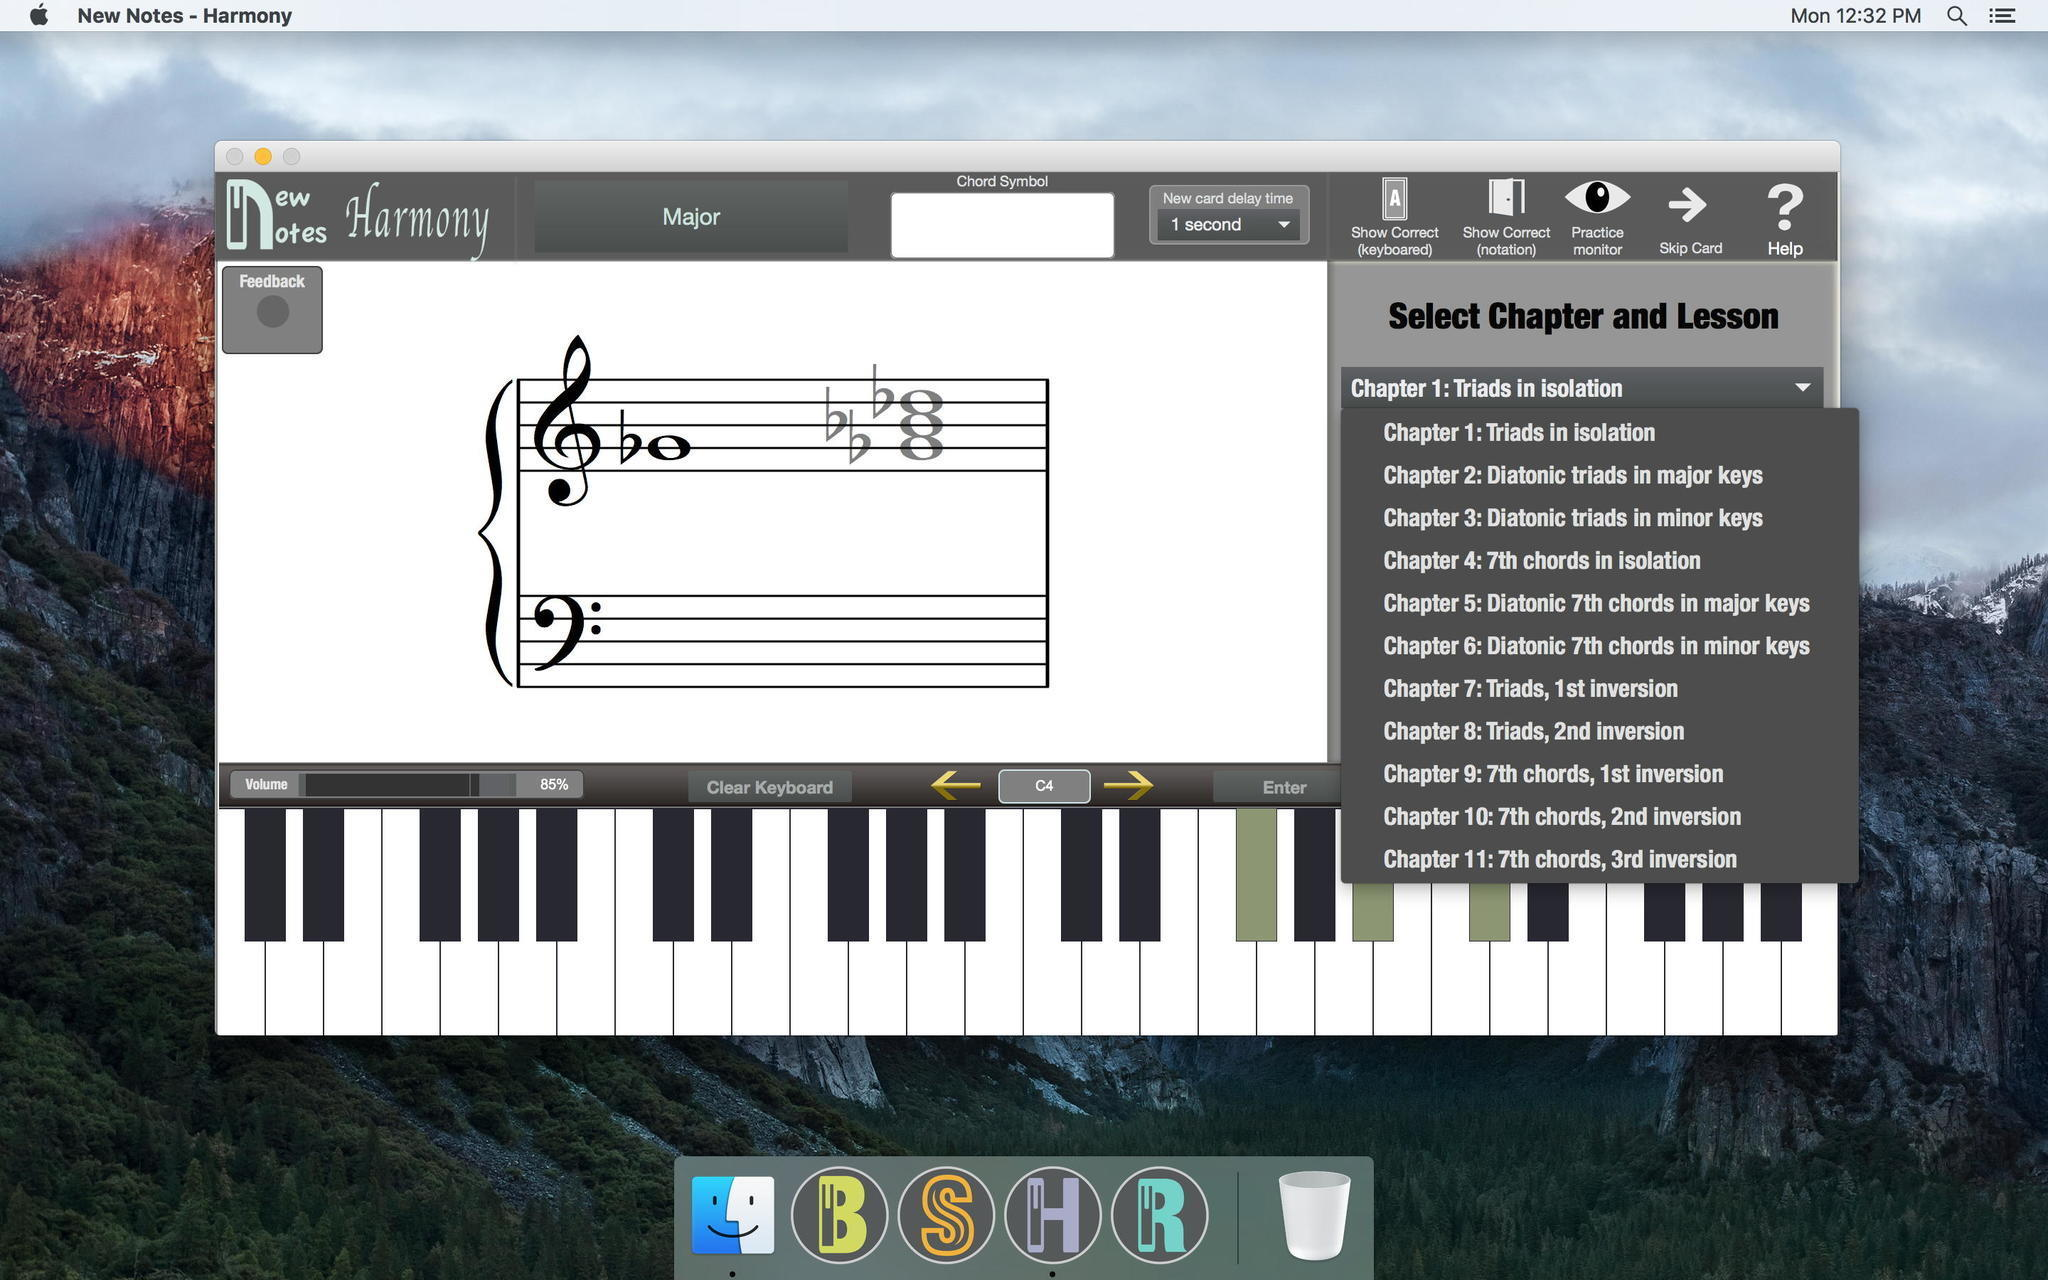 Screenshot 1 for New Notes - Harmony